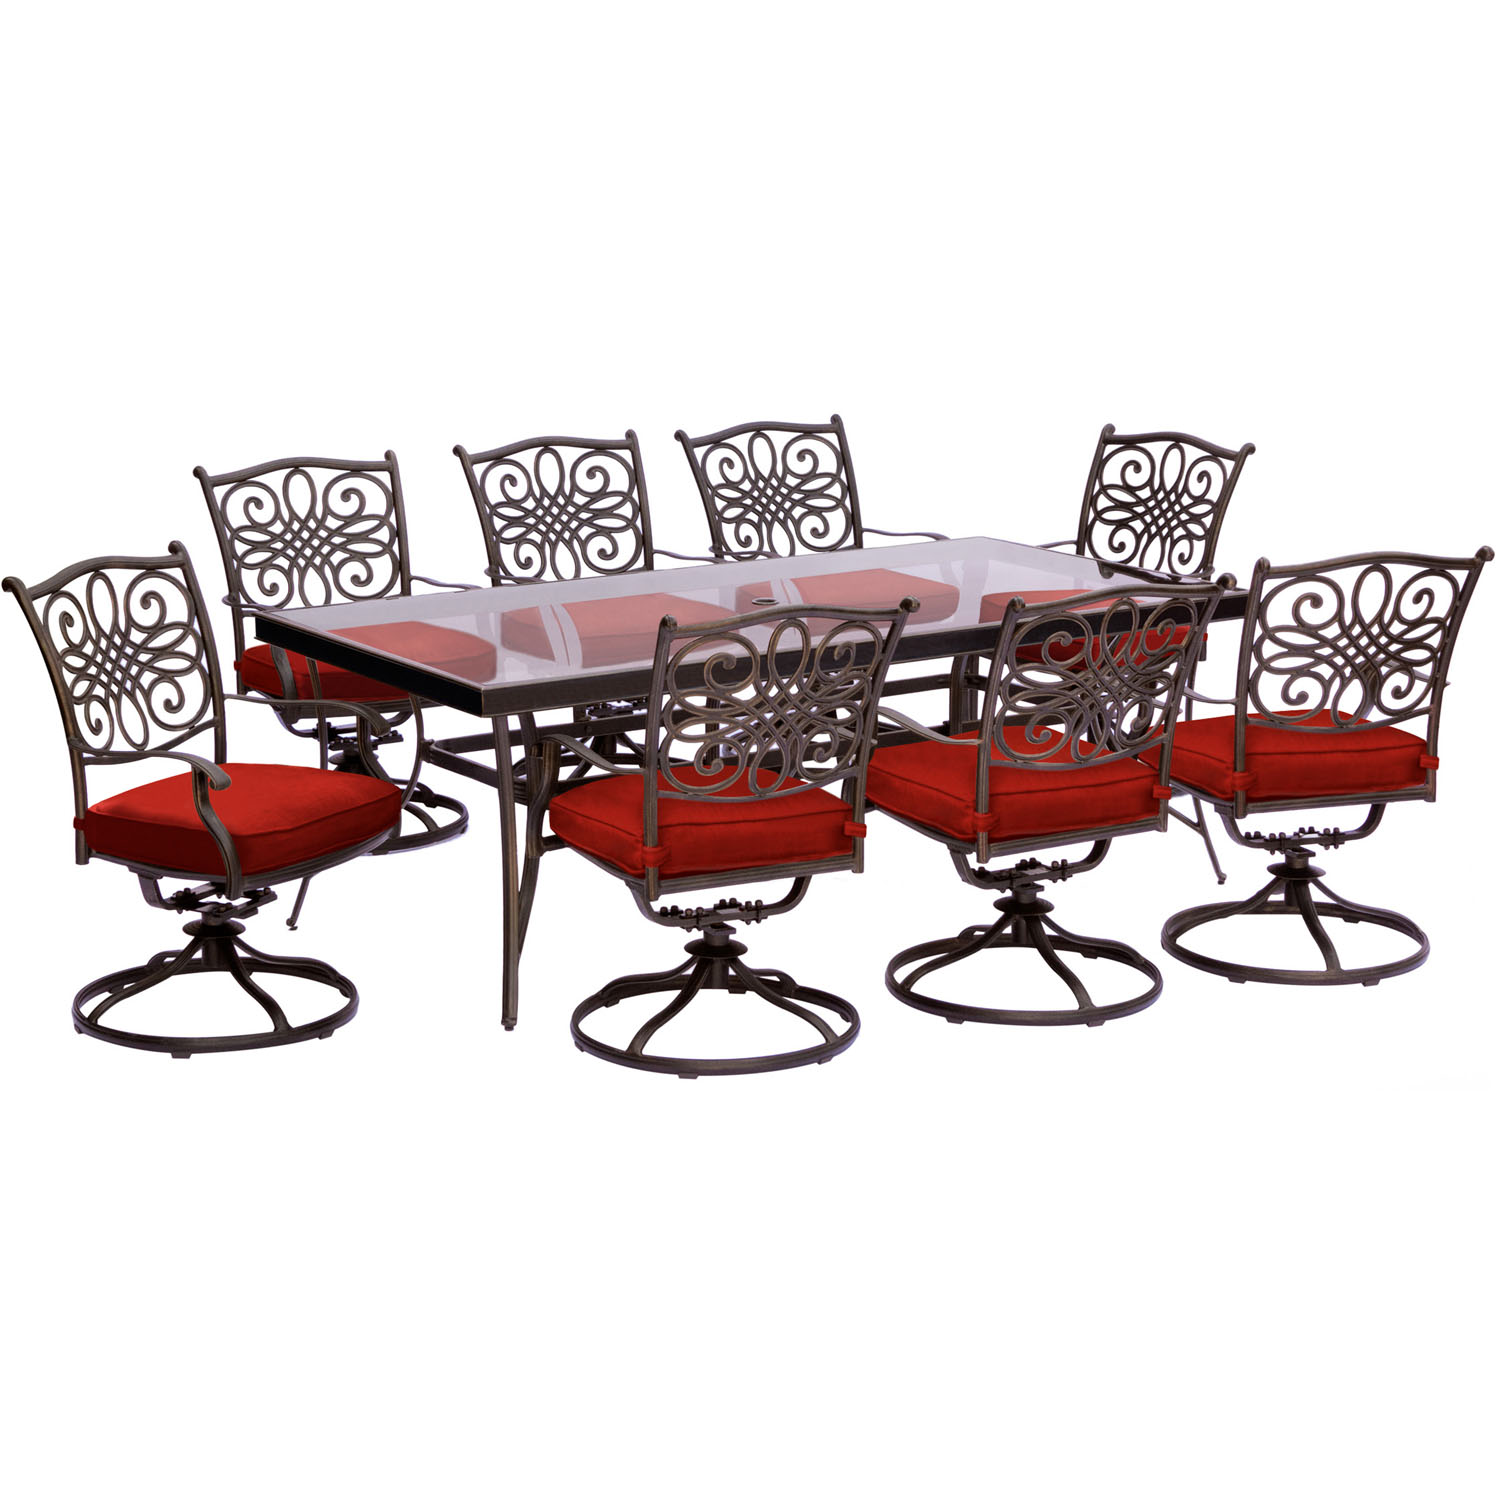 Hanover Traditions 9-Piece Outdoor Dining Set with Glass-Top Table and 8 Swivel Rockers